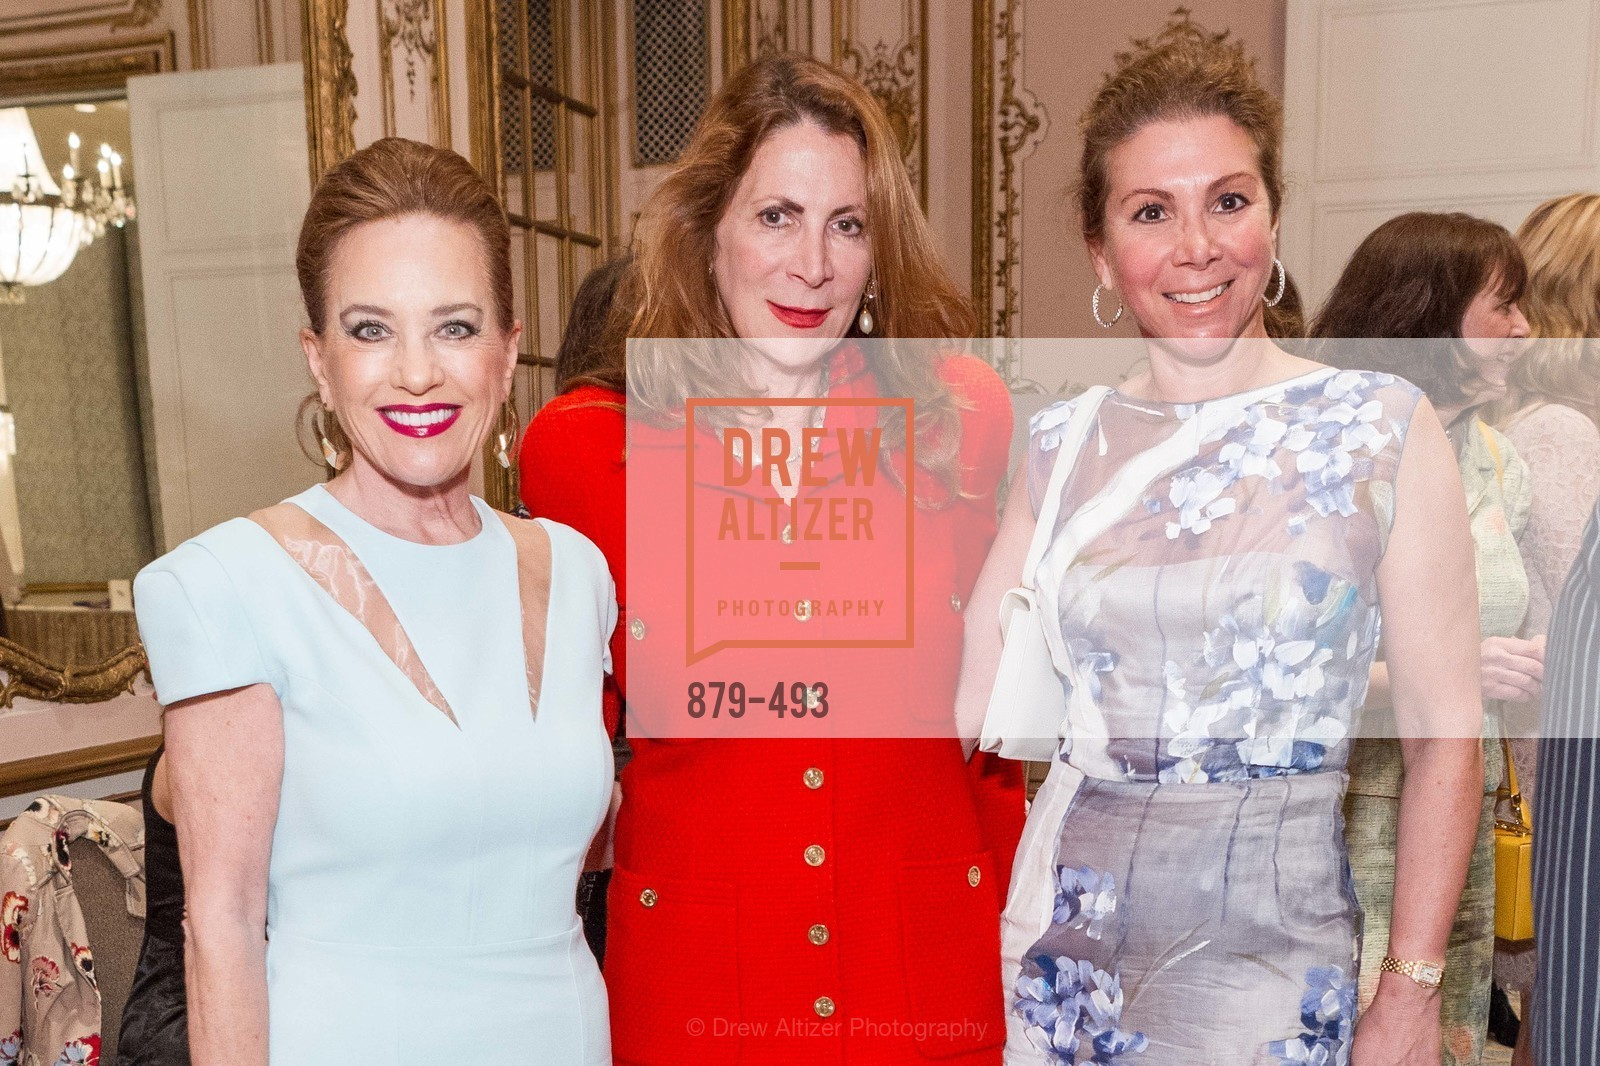 Robin Collins, Patricia Ferrin Loucks, Debra Leylegian, SAN FRANCISCO BALLET AUXULIARY 2014 Fashion Show, US. The Fairmont, April 3rd, 2014,Drew Altizer, Drew Altizer Photography, full-service agency, private events, San Francisco photographer, photographer california